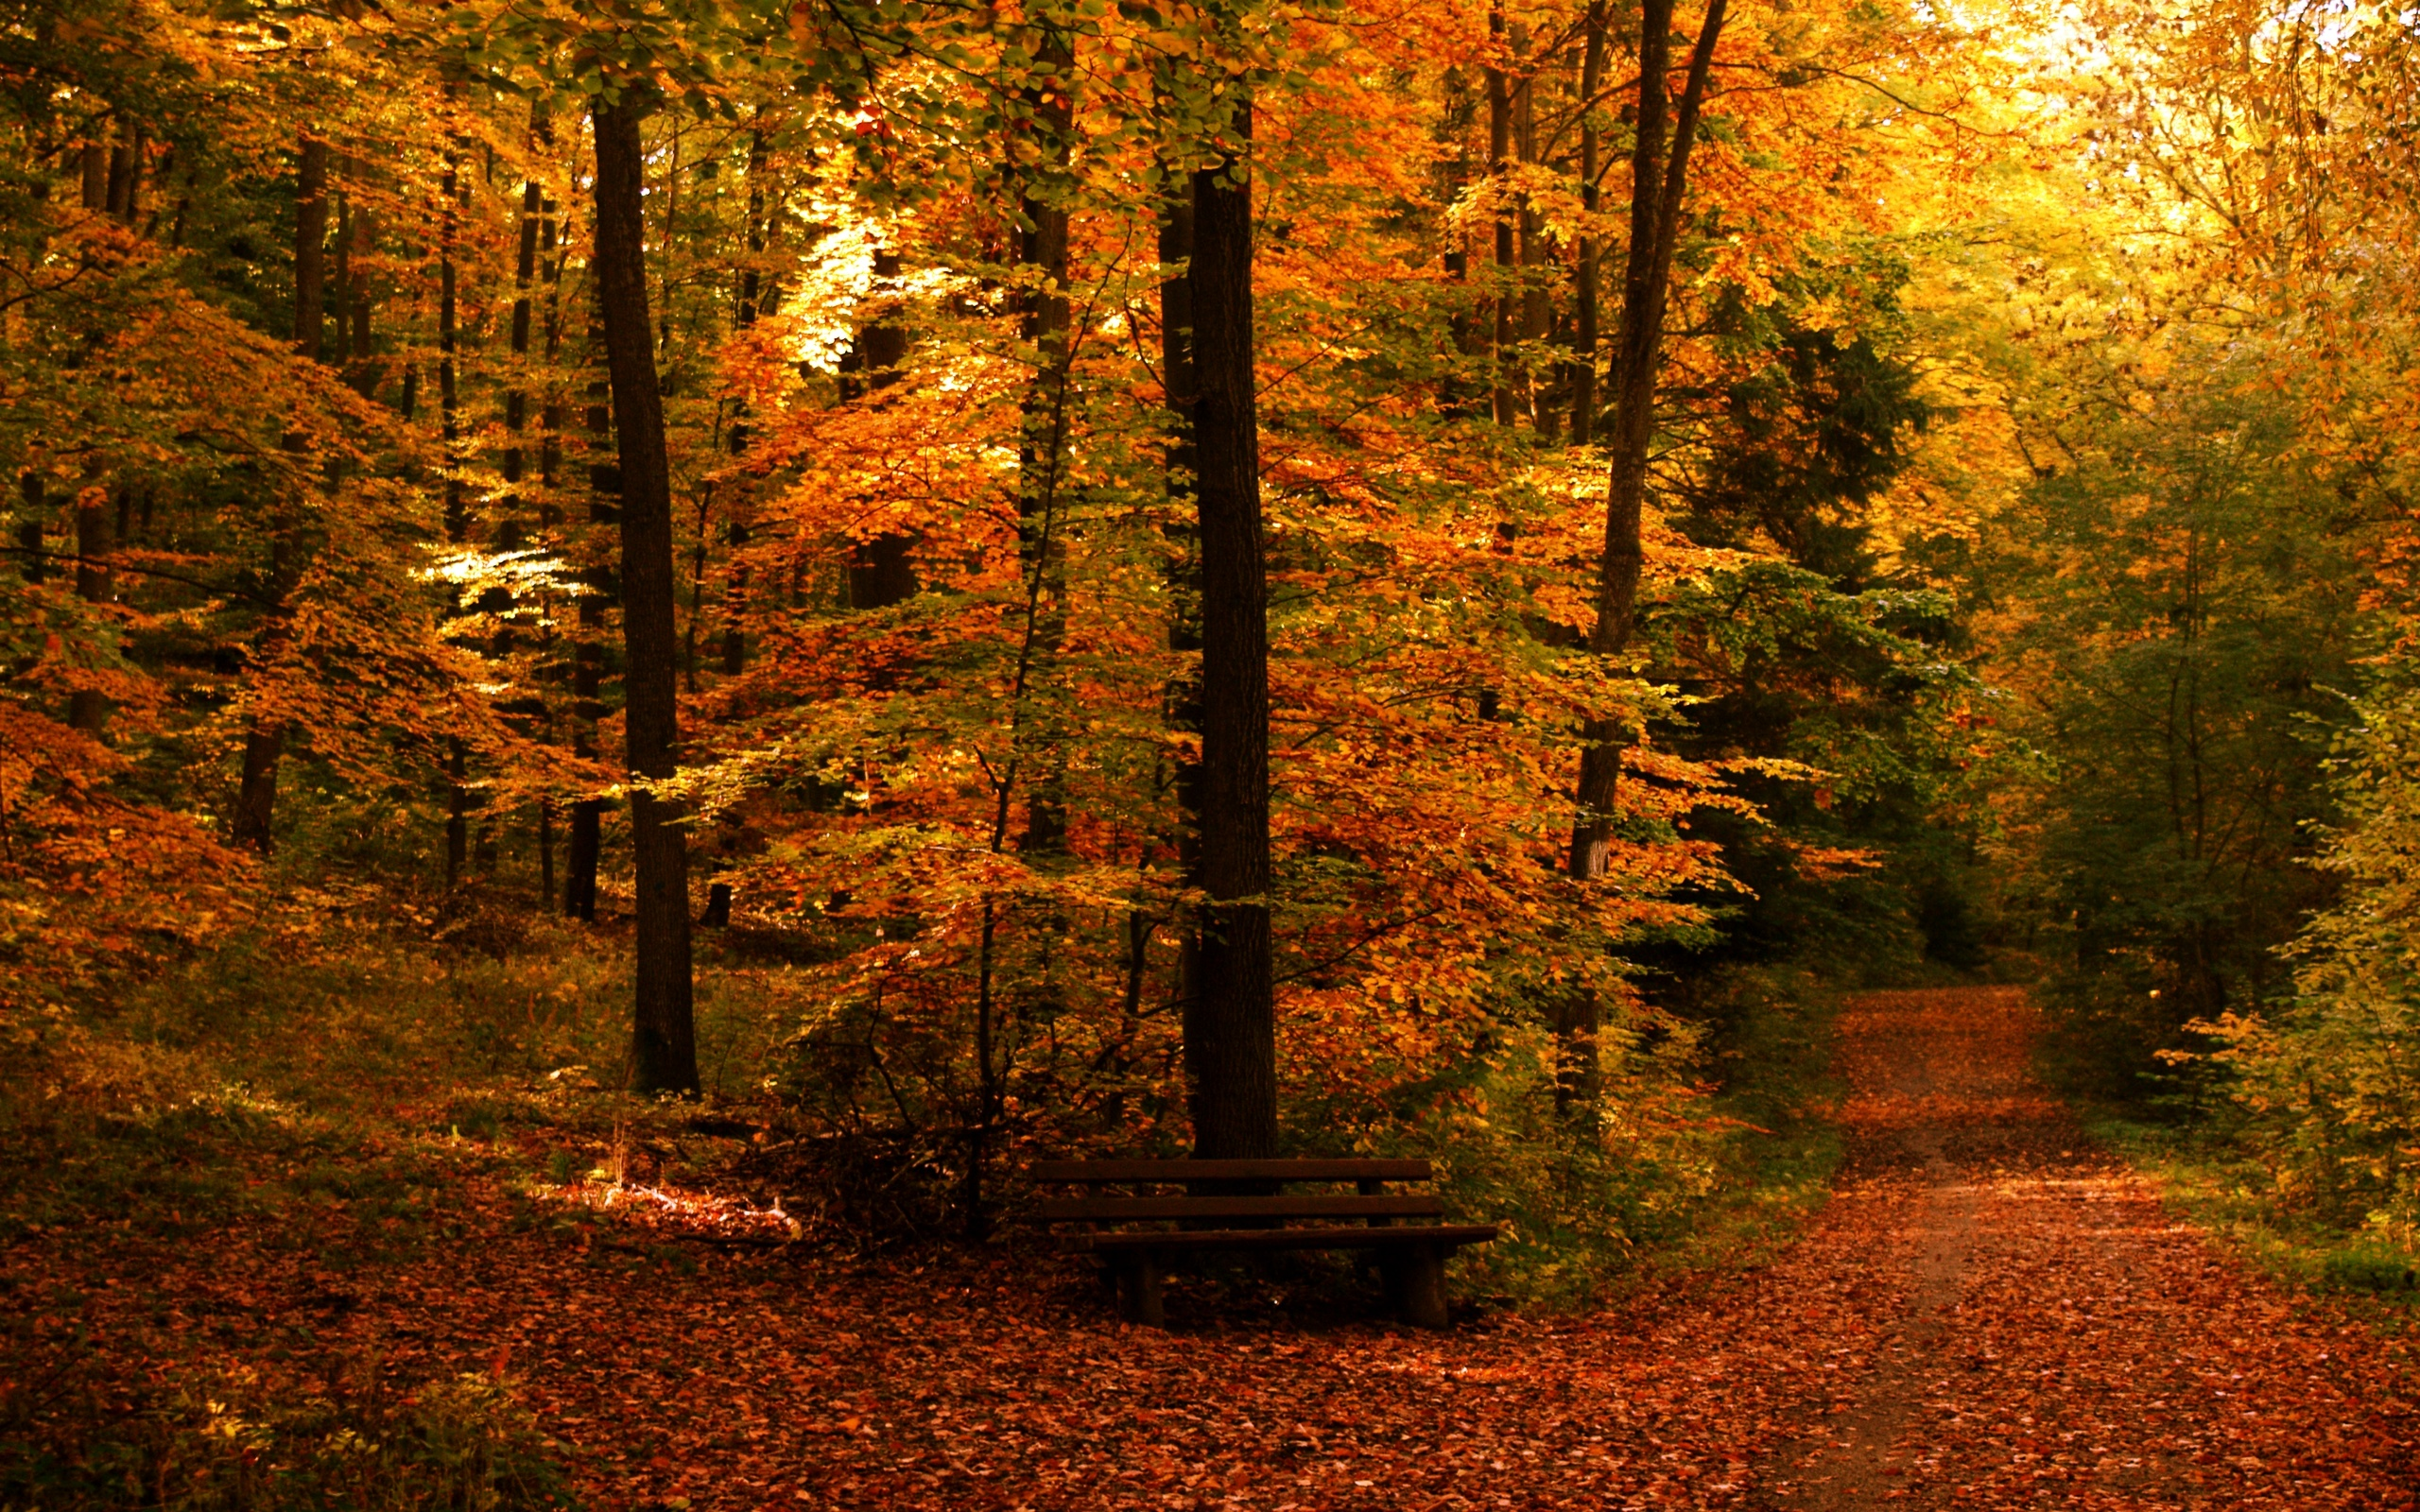 Fall Hd Wallpaper Background Image 2560x1600 Id 165266